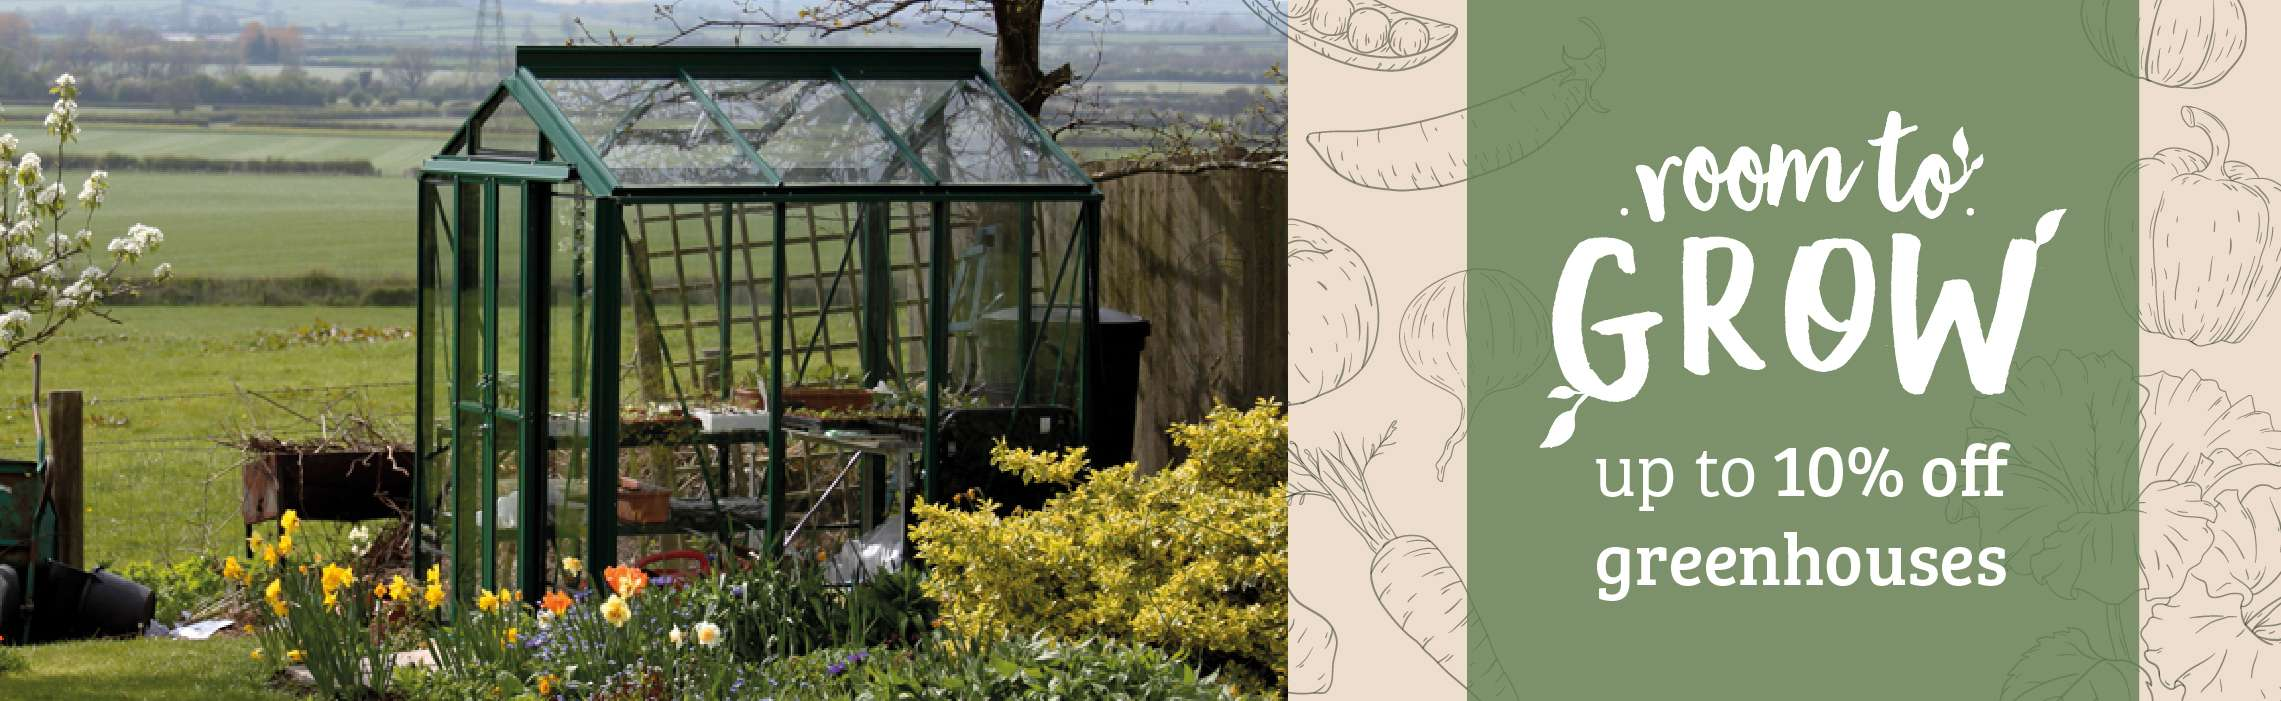 Room to Grow. Up to 10% off Greenhouses